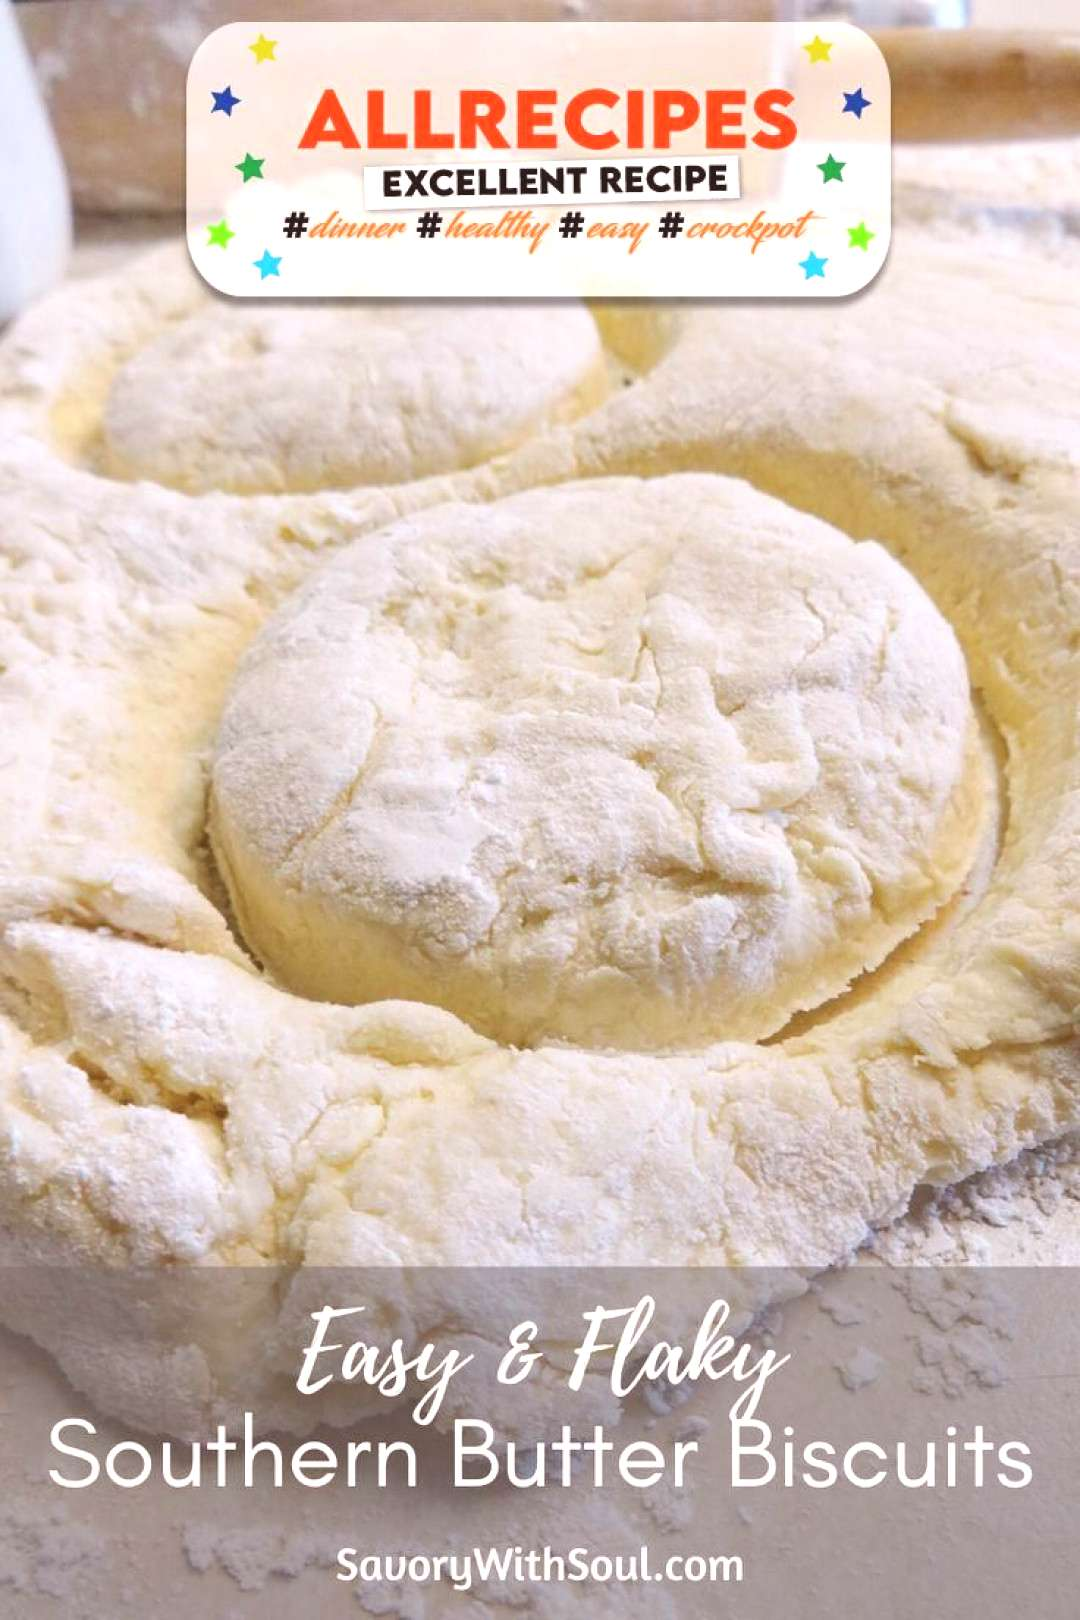 Easy & Flaky Southern Butter Biscuits - - This recipe for Southern butter biscuits was handed down